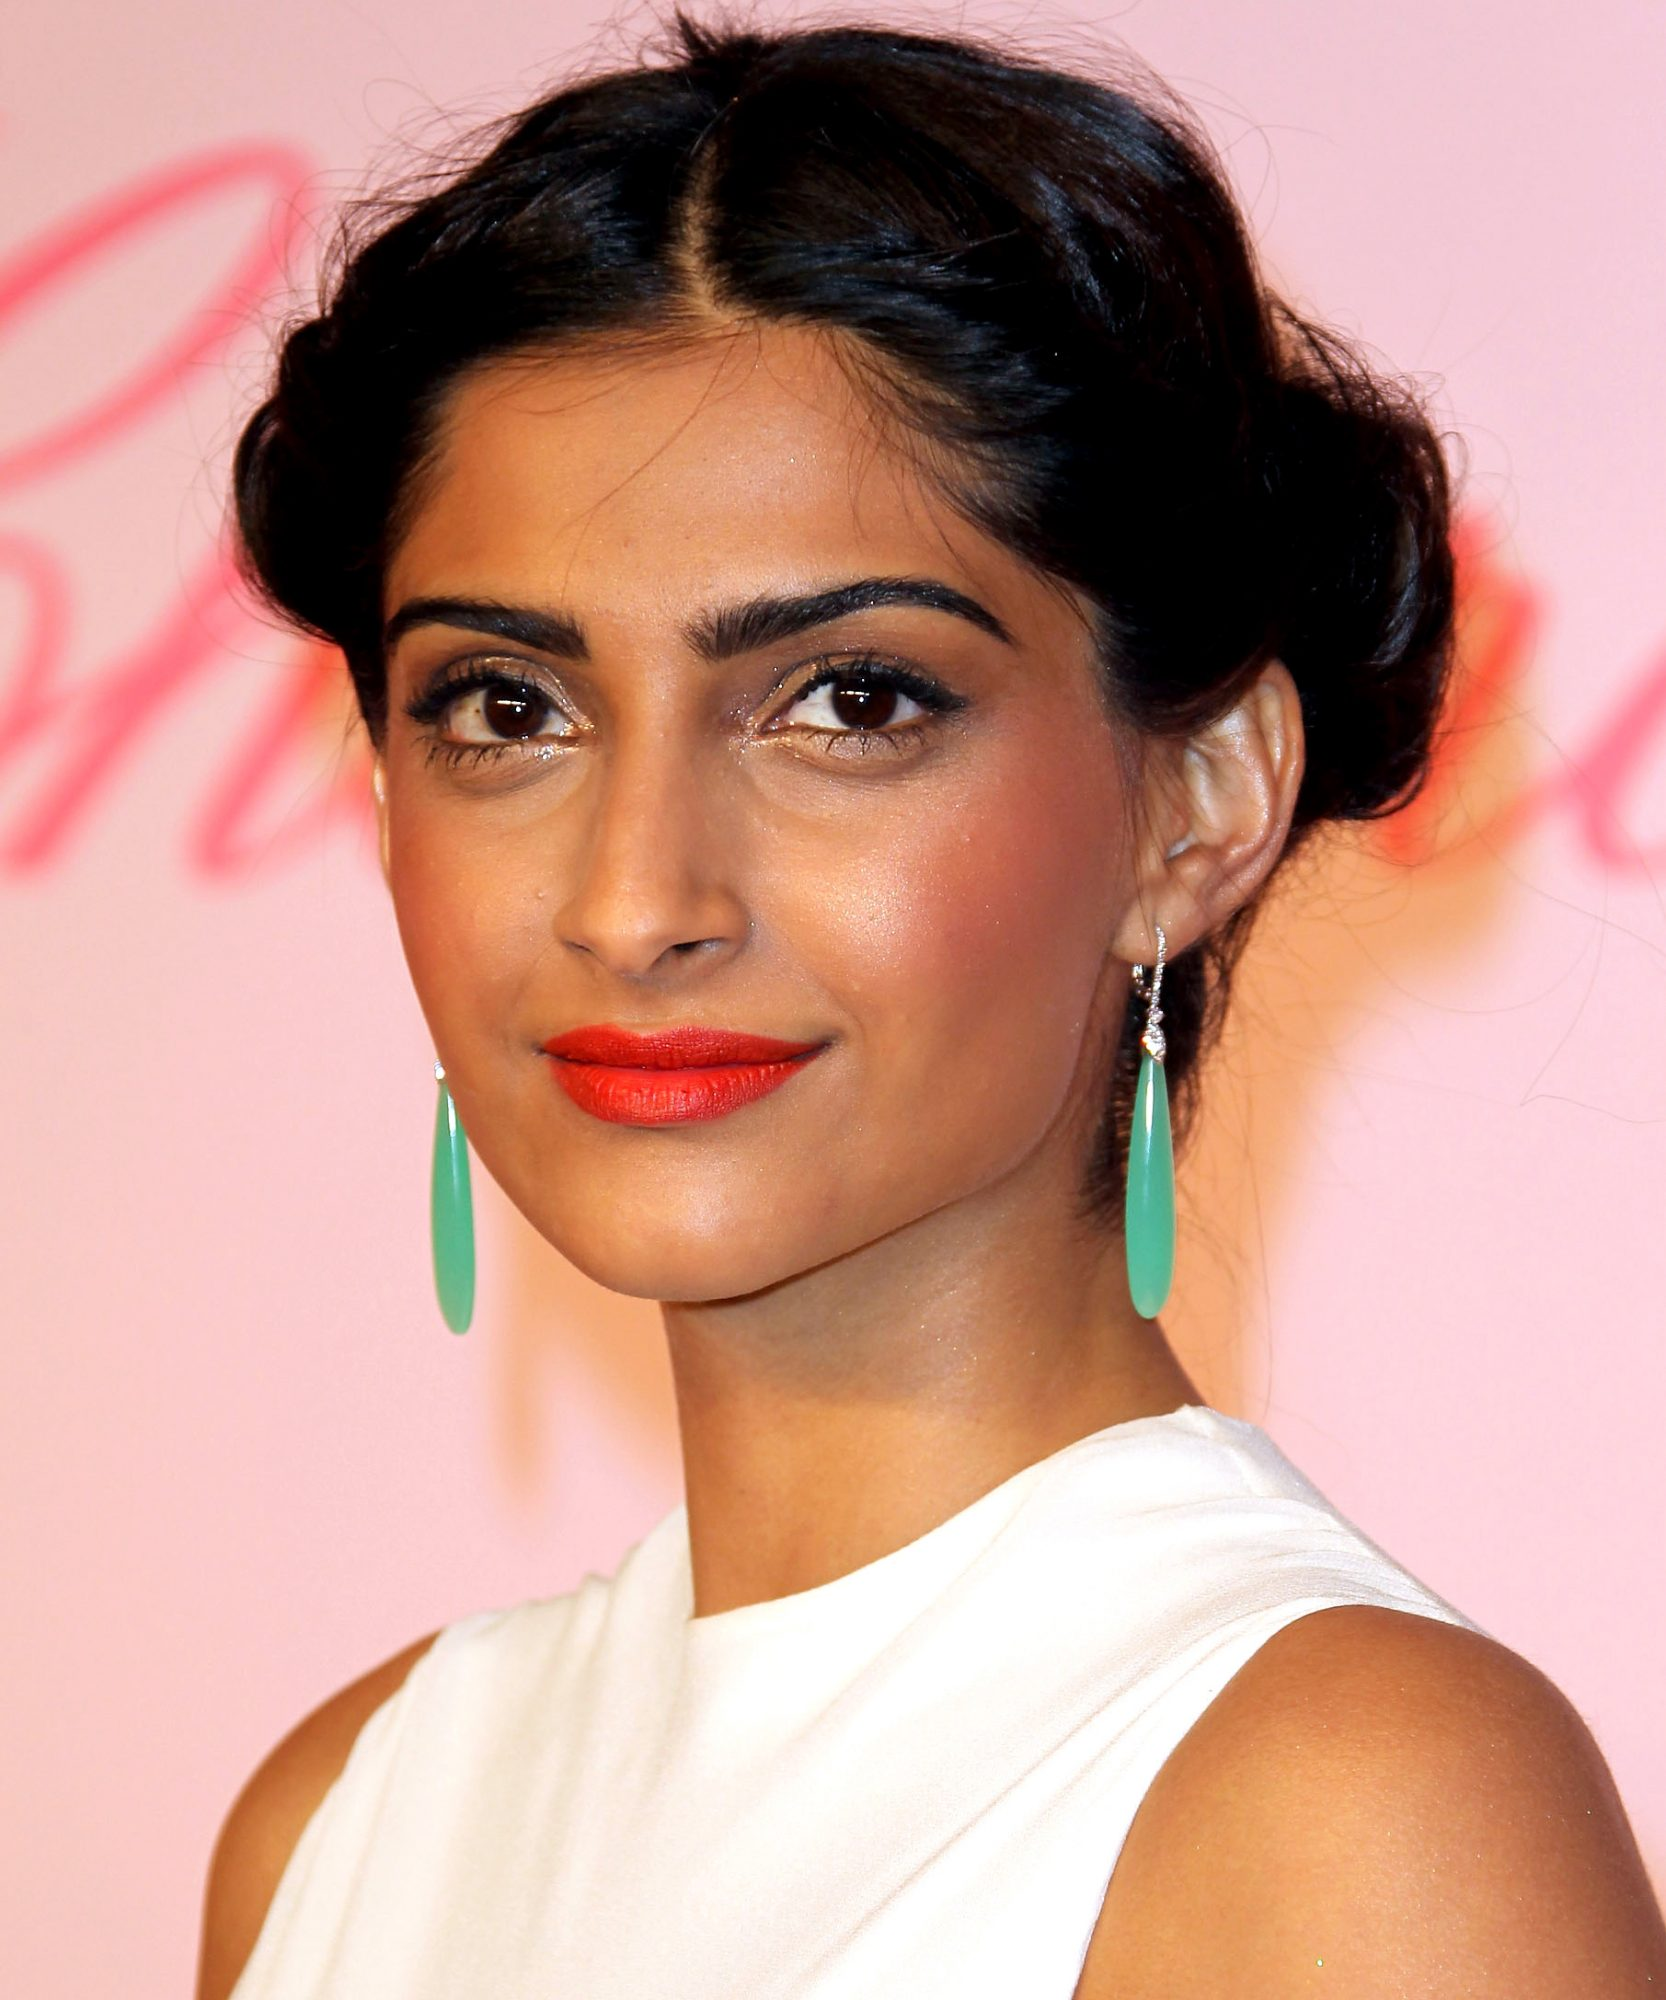 Sonam Kapoor - 25 Easy Summer Hairstyles - Star Hair